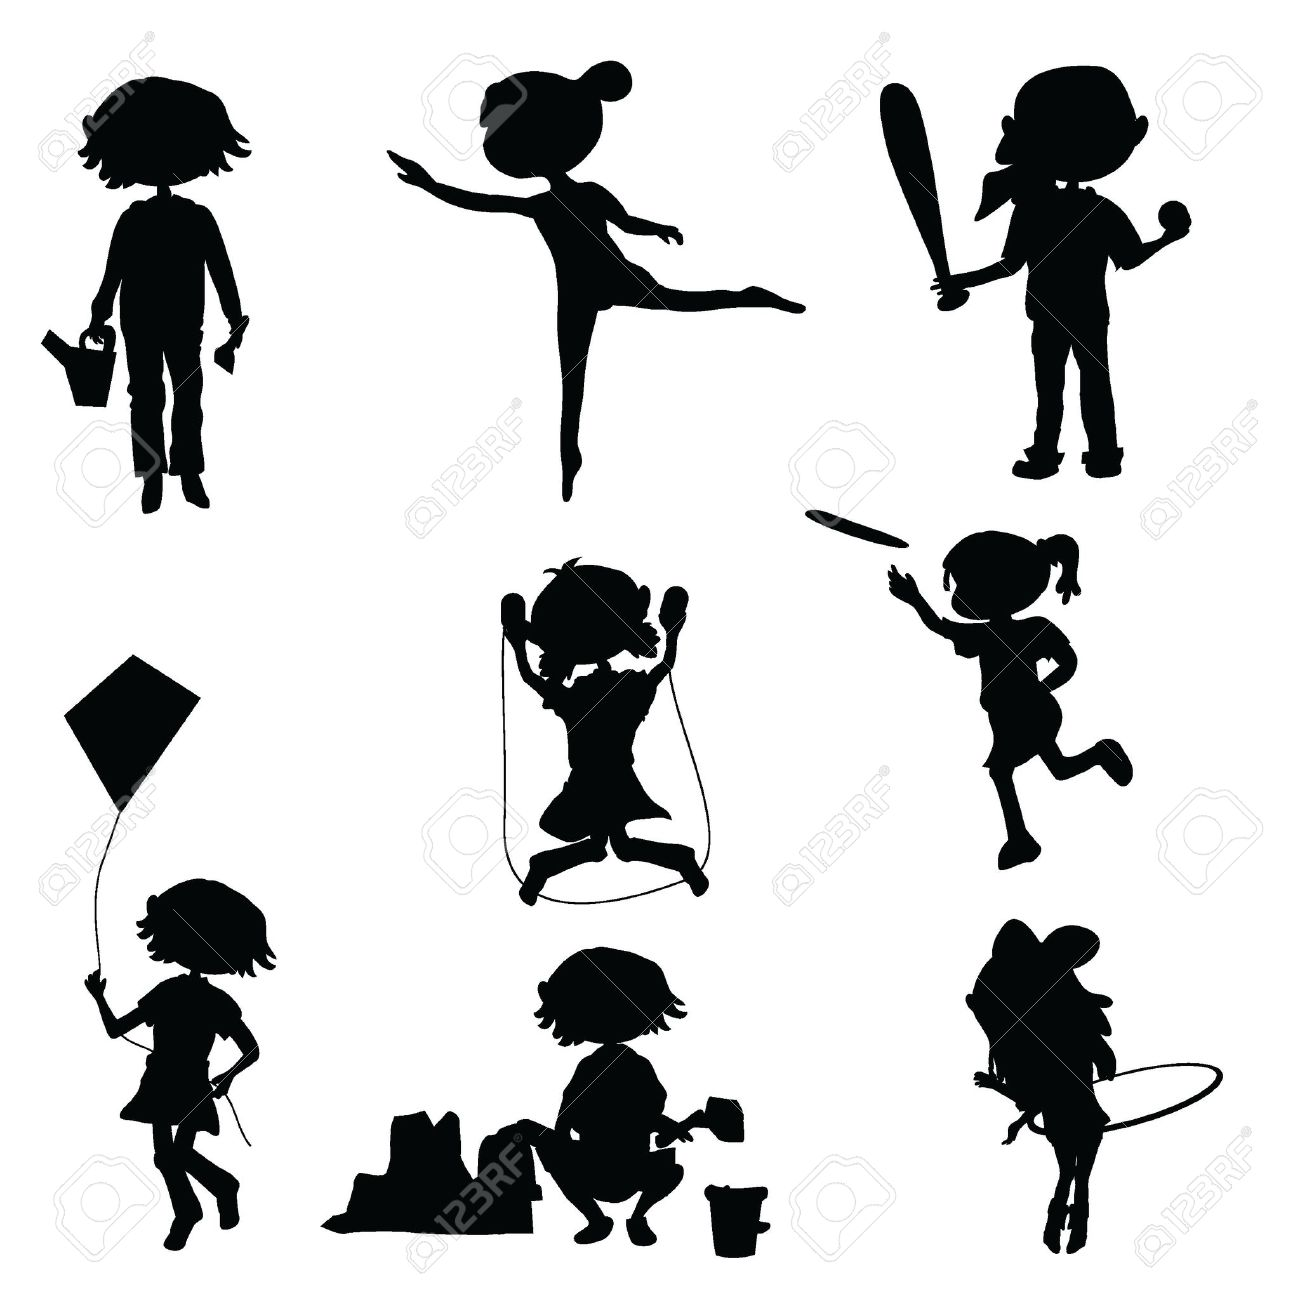 silhouettes cartoon kids for fun education and party royalty free